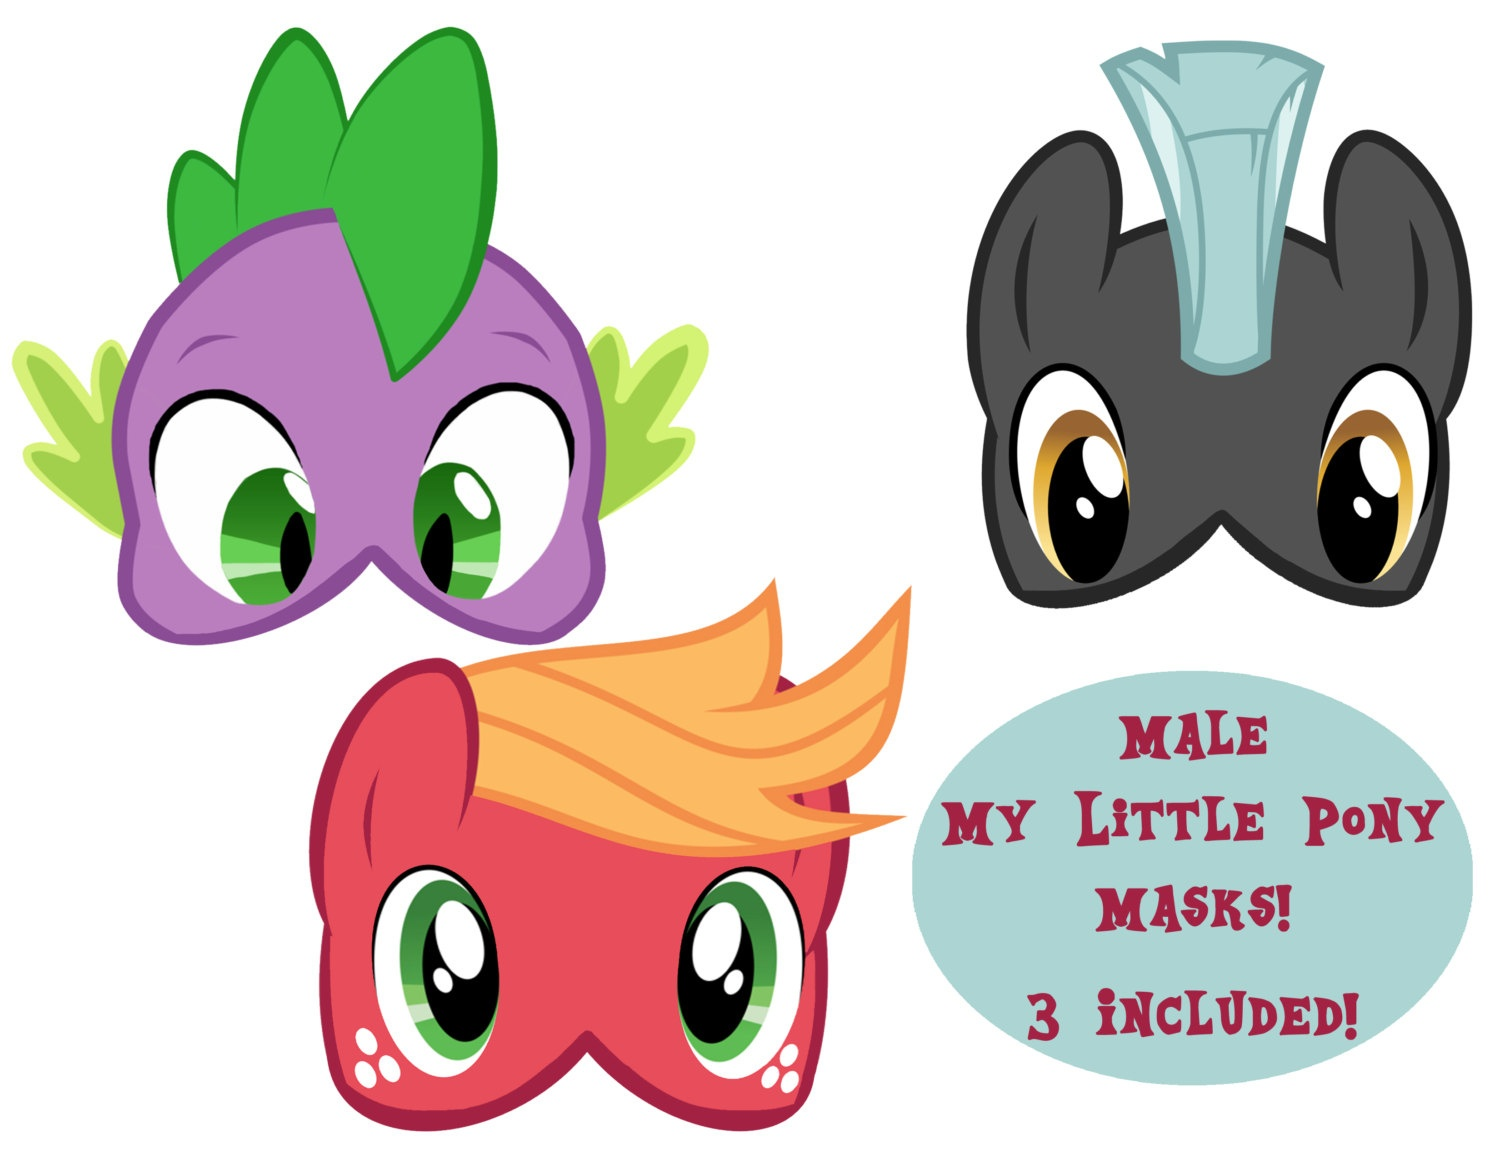 Male My Little Pony Masks 3 | Etsy - Free My Little Pony Printable Masks